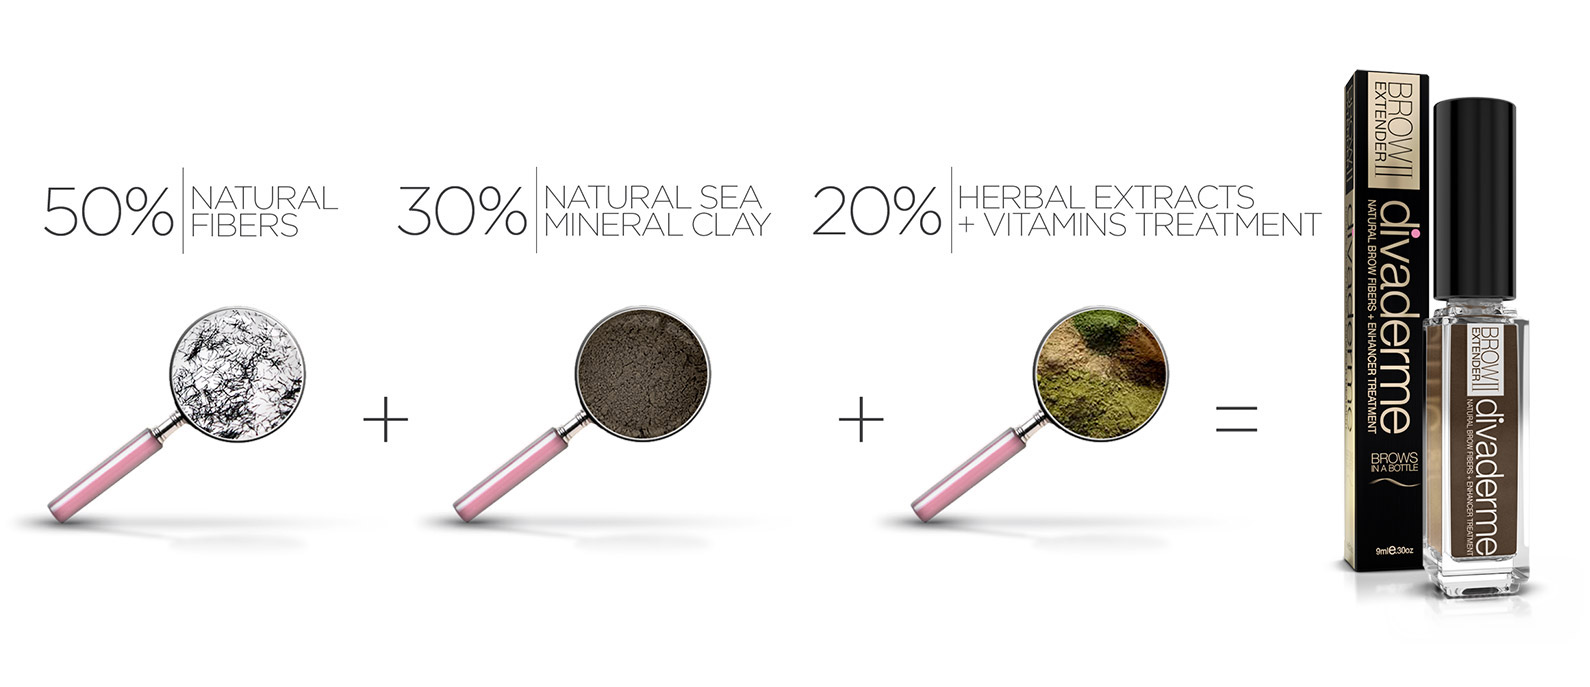 80% Natural Fibers, 20% Herbal Extracts + Vitamins Treatment